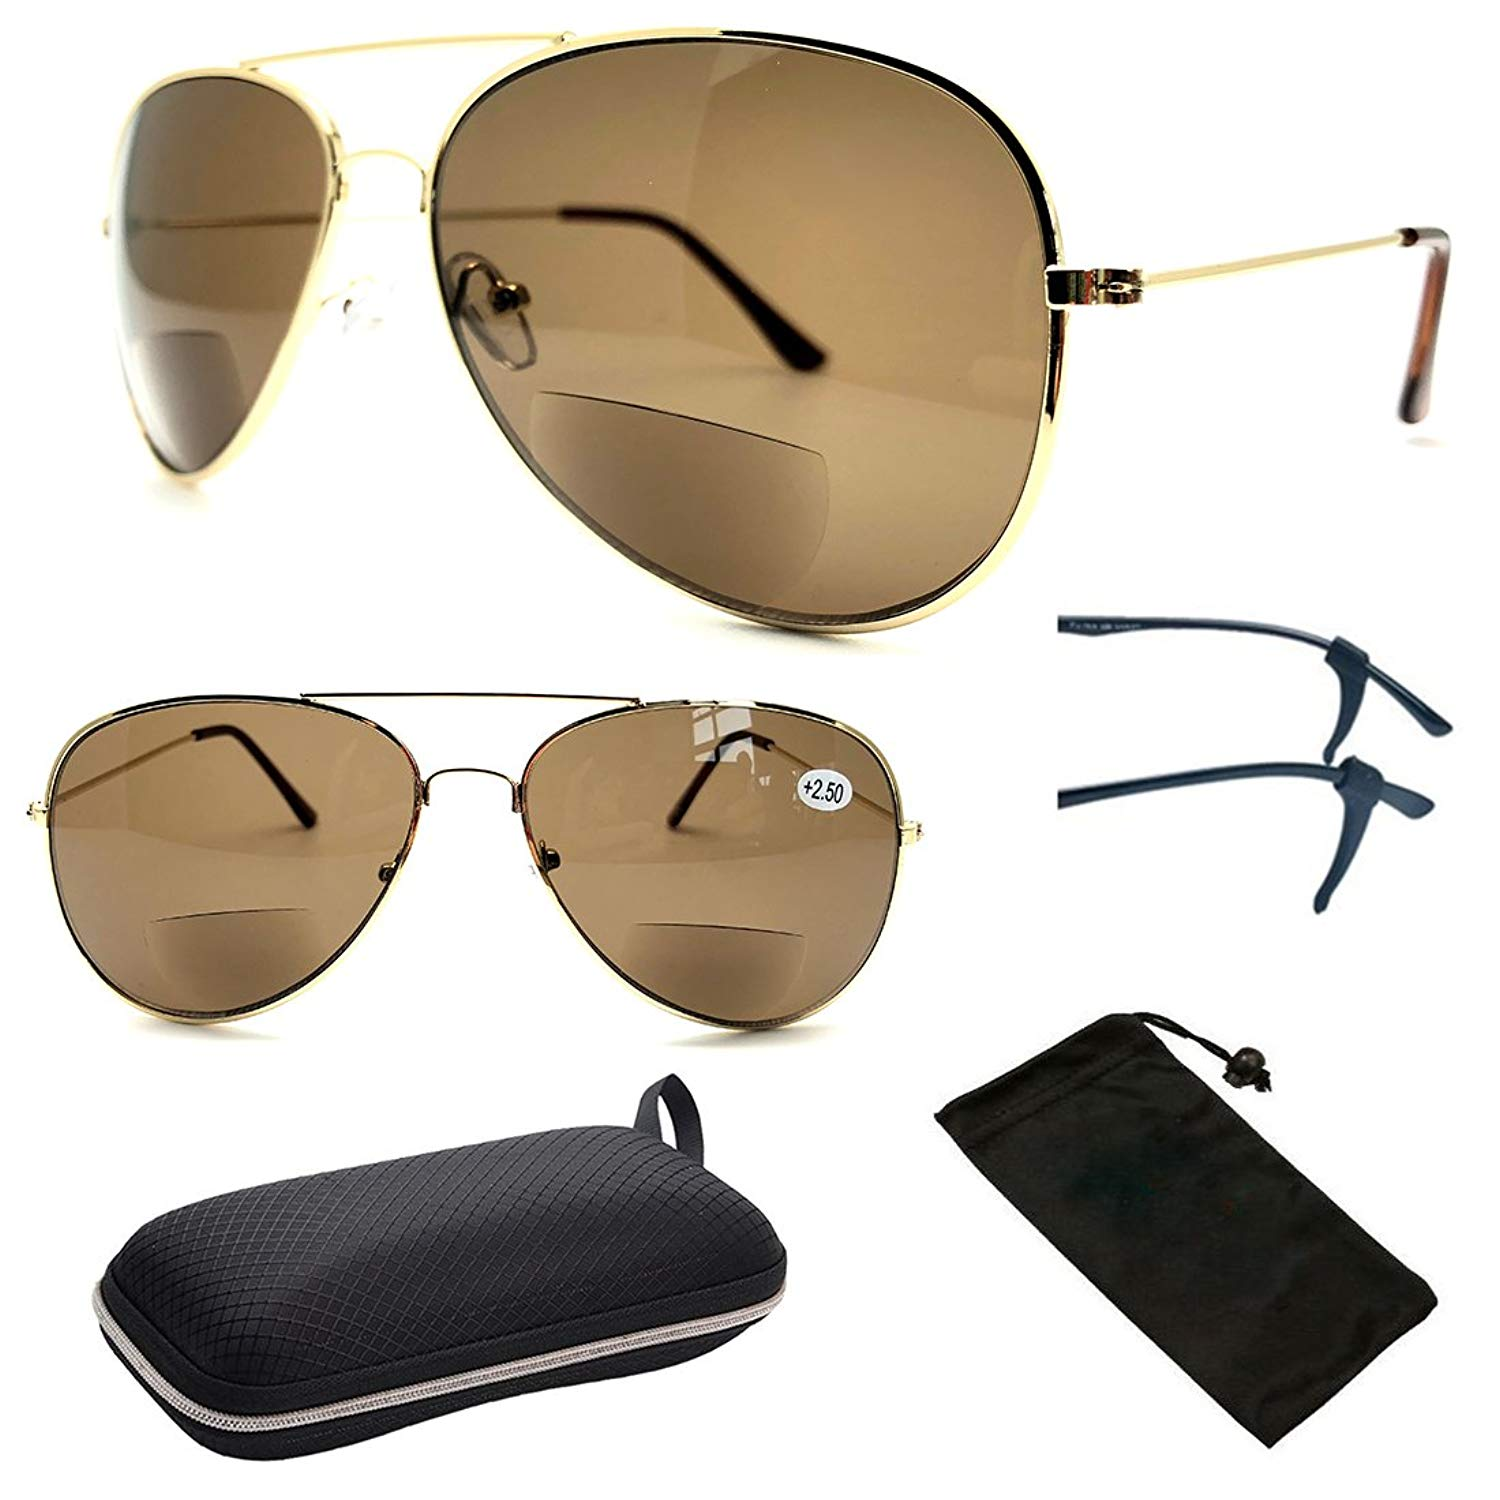 Premium Bifocal Metal Rectangular Shape Men Women Fashion Designer Sun Readers ( These Are Bifocal Sunglasses + Readers )